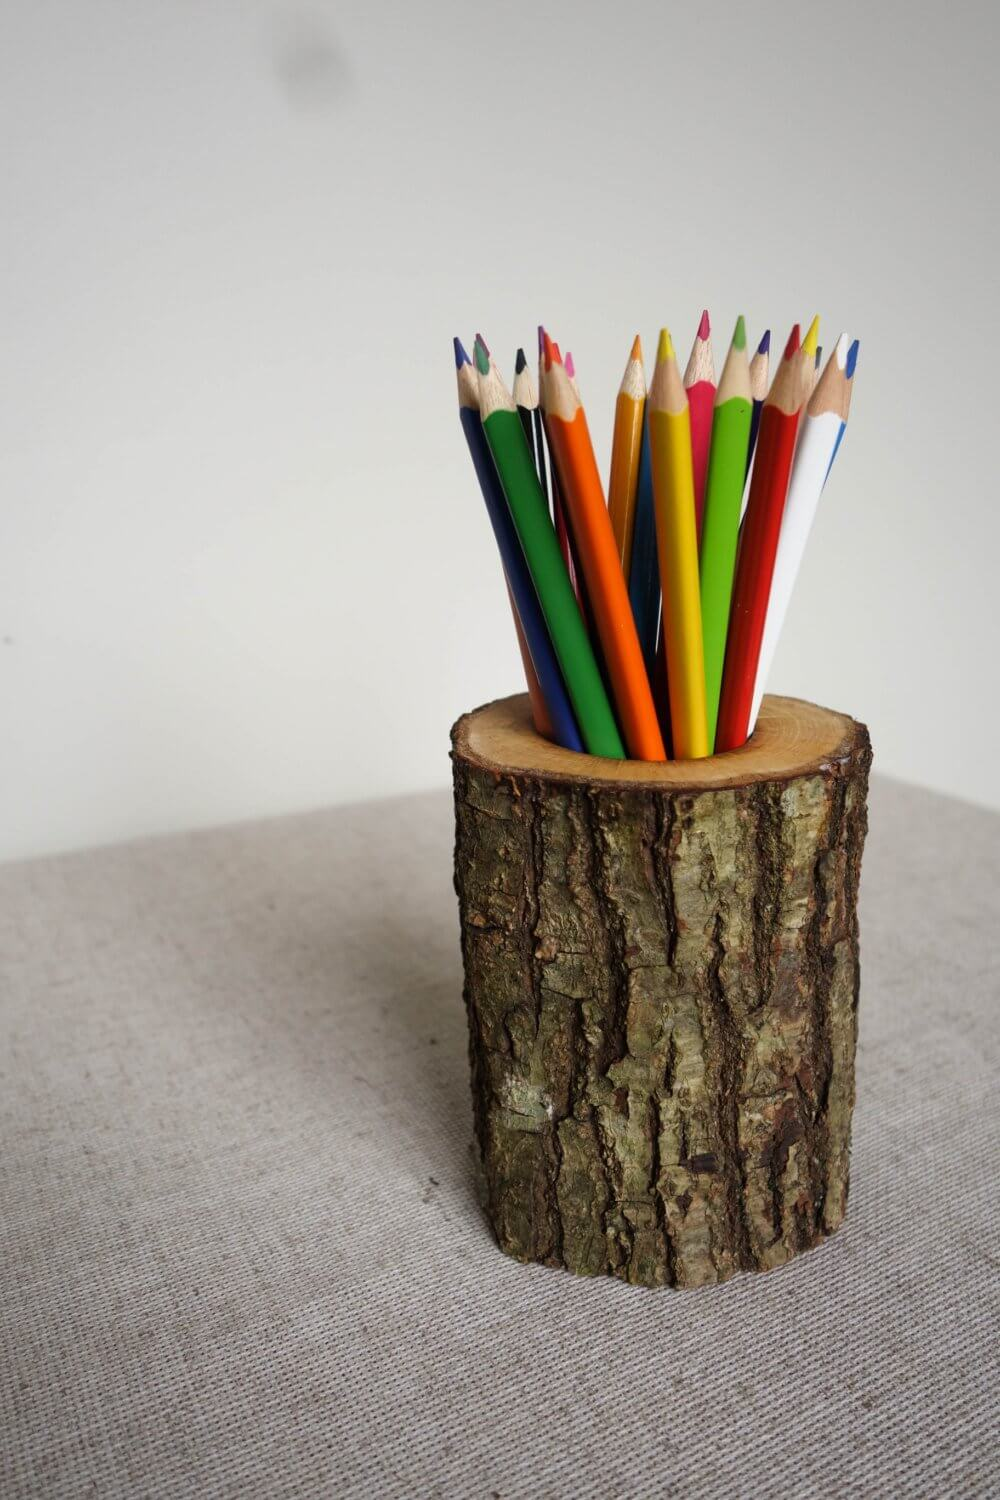 Creative Wooden Pencil Holder Perfect for Organization